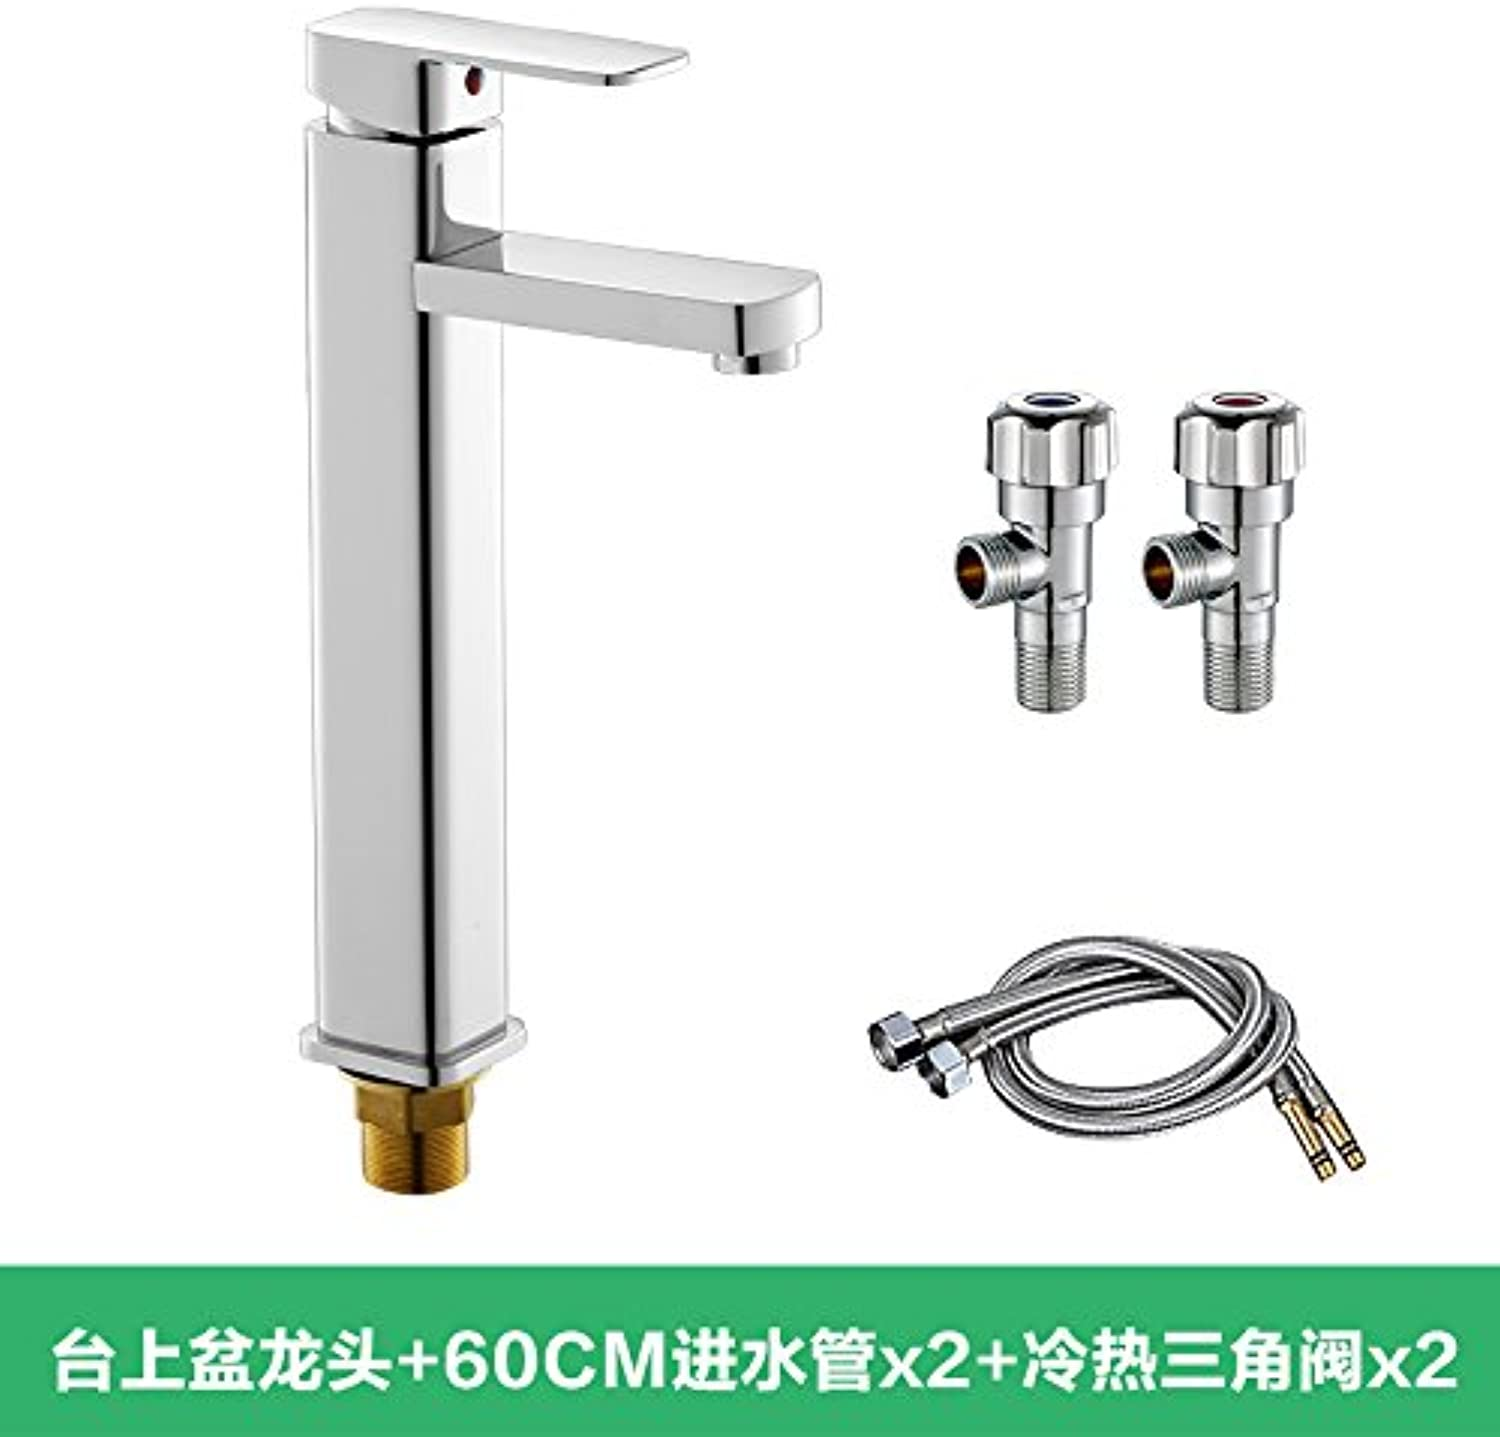 Hlluya Professional Sink Mixer Tap Kitchen Faucet Hot and cold water basin mixer console basin basin to block the high single hole faucet, basin mixer console + 1.30 +60CM Inlet Valve